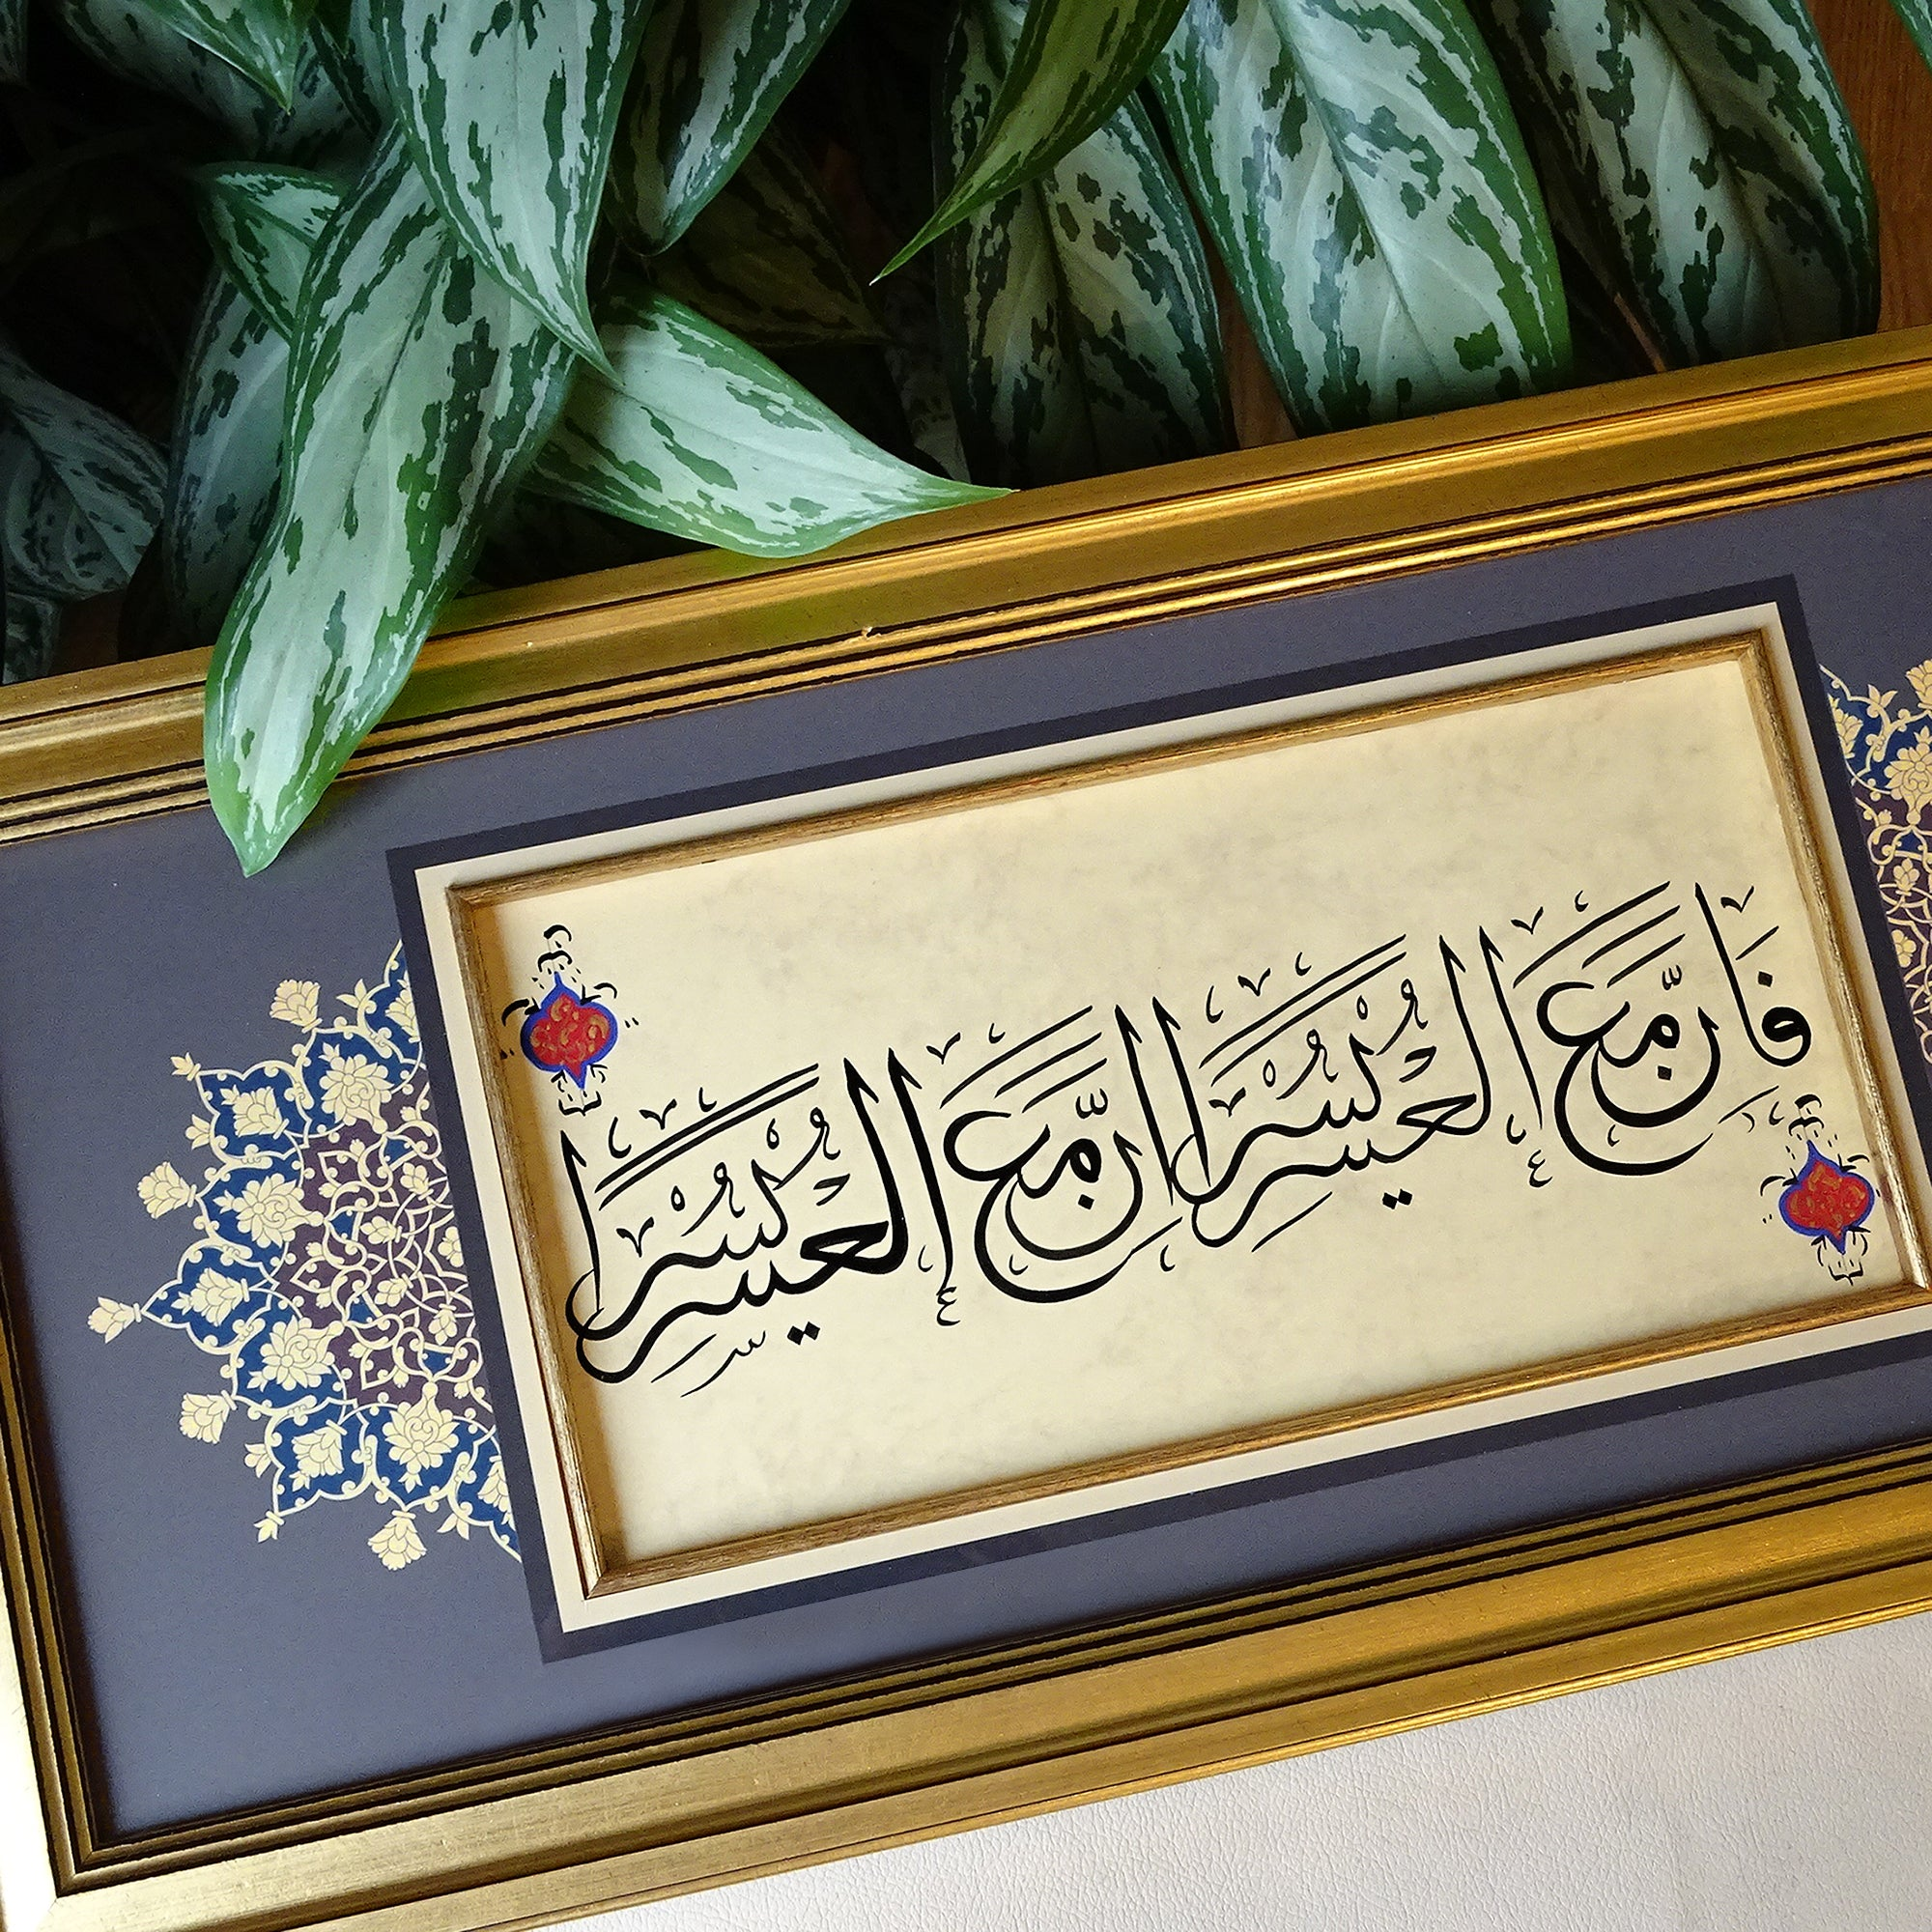 Islamic Saying in Frame